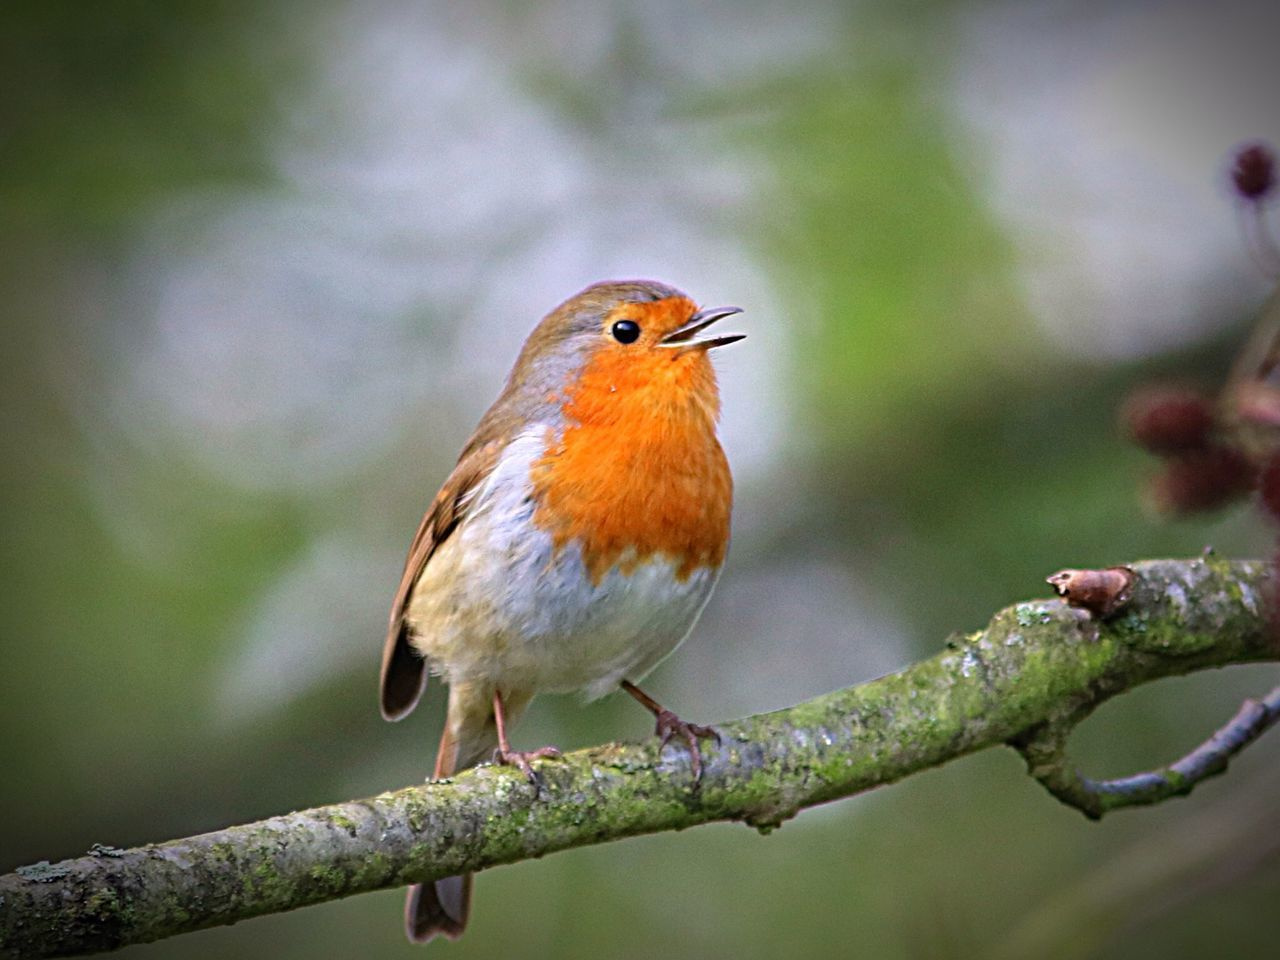 Bird One Animal Animal Themes Perching Animals In The Wild Focus On Foreground Animal Wildlife Nature Robin Close-up No People Branch Outdoors Day Nature Photography Bird Photography Birds Of EyeEm  Wildlife Photography